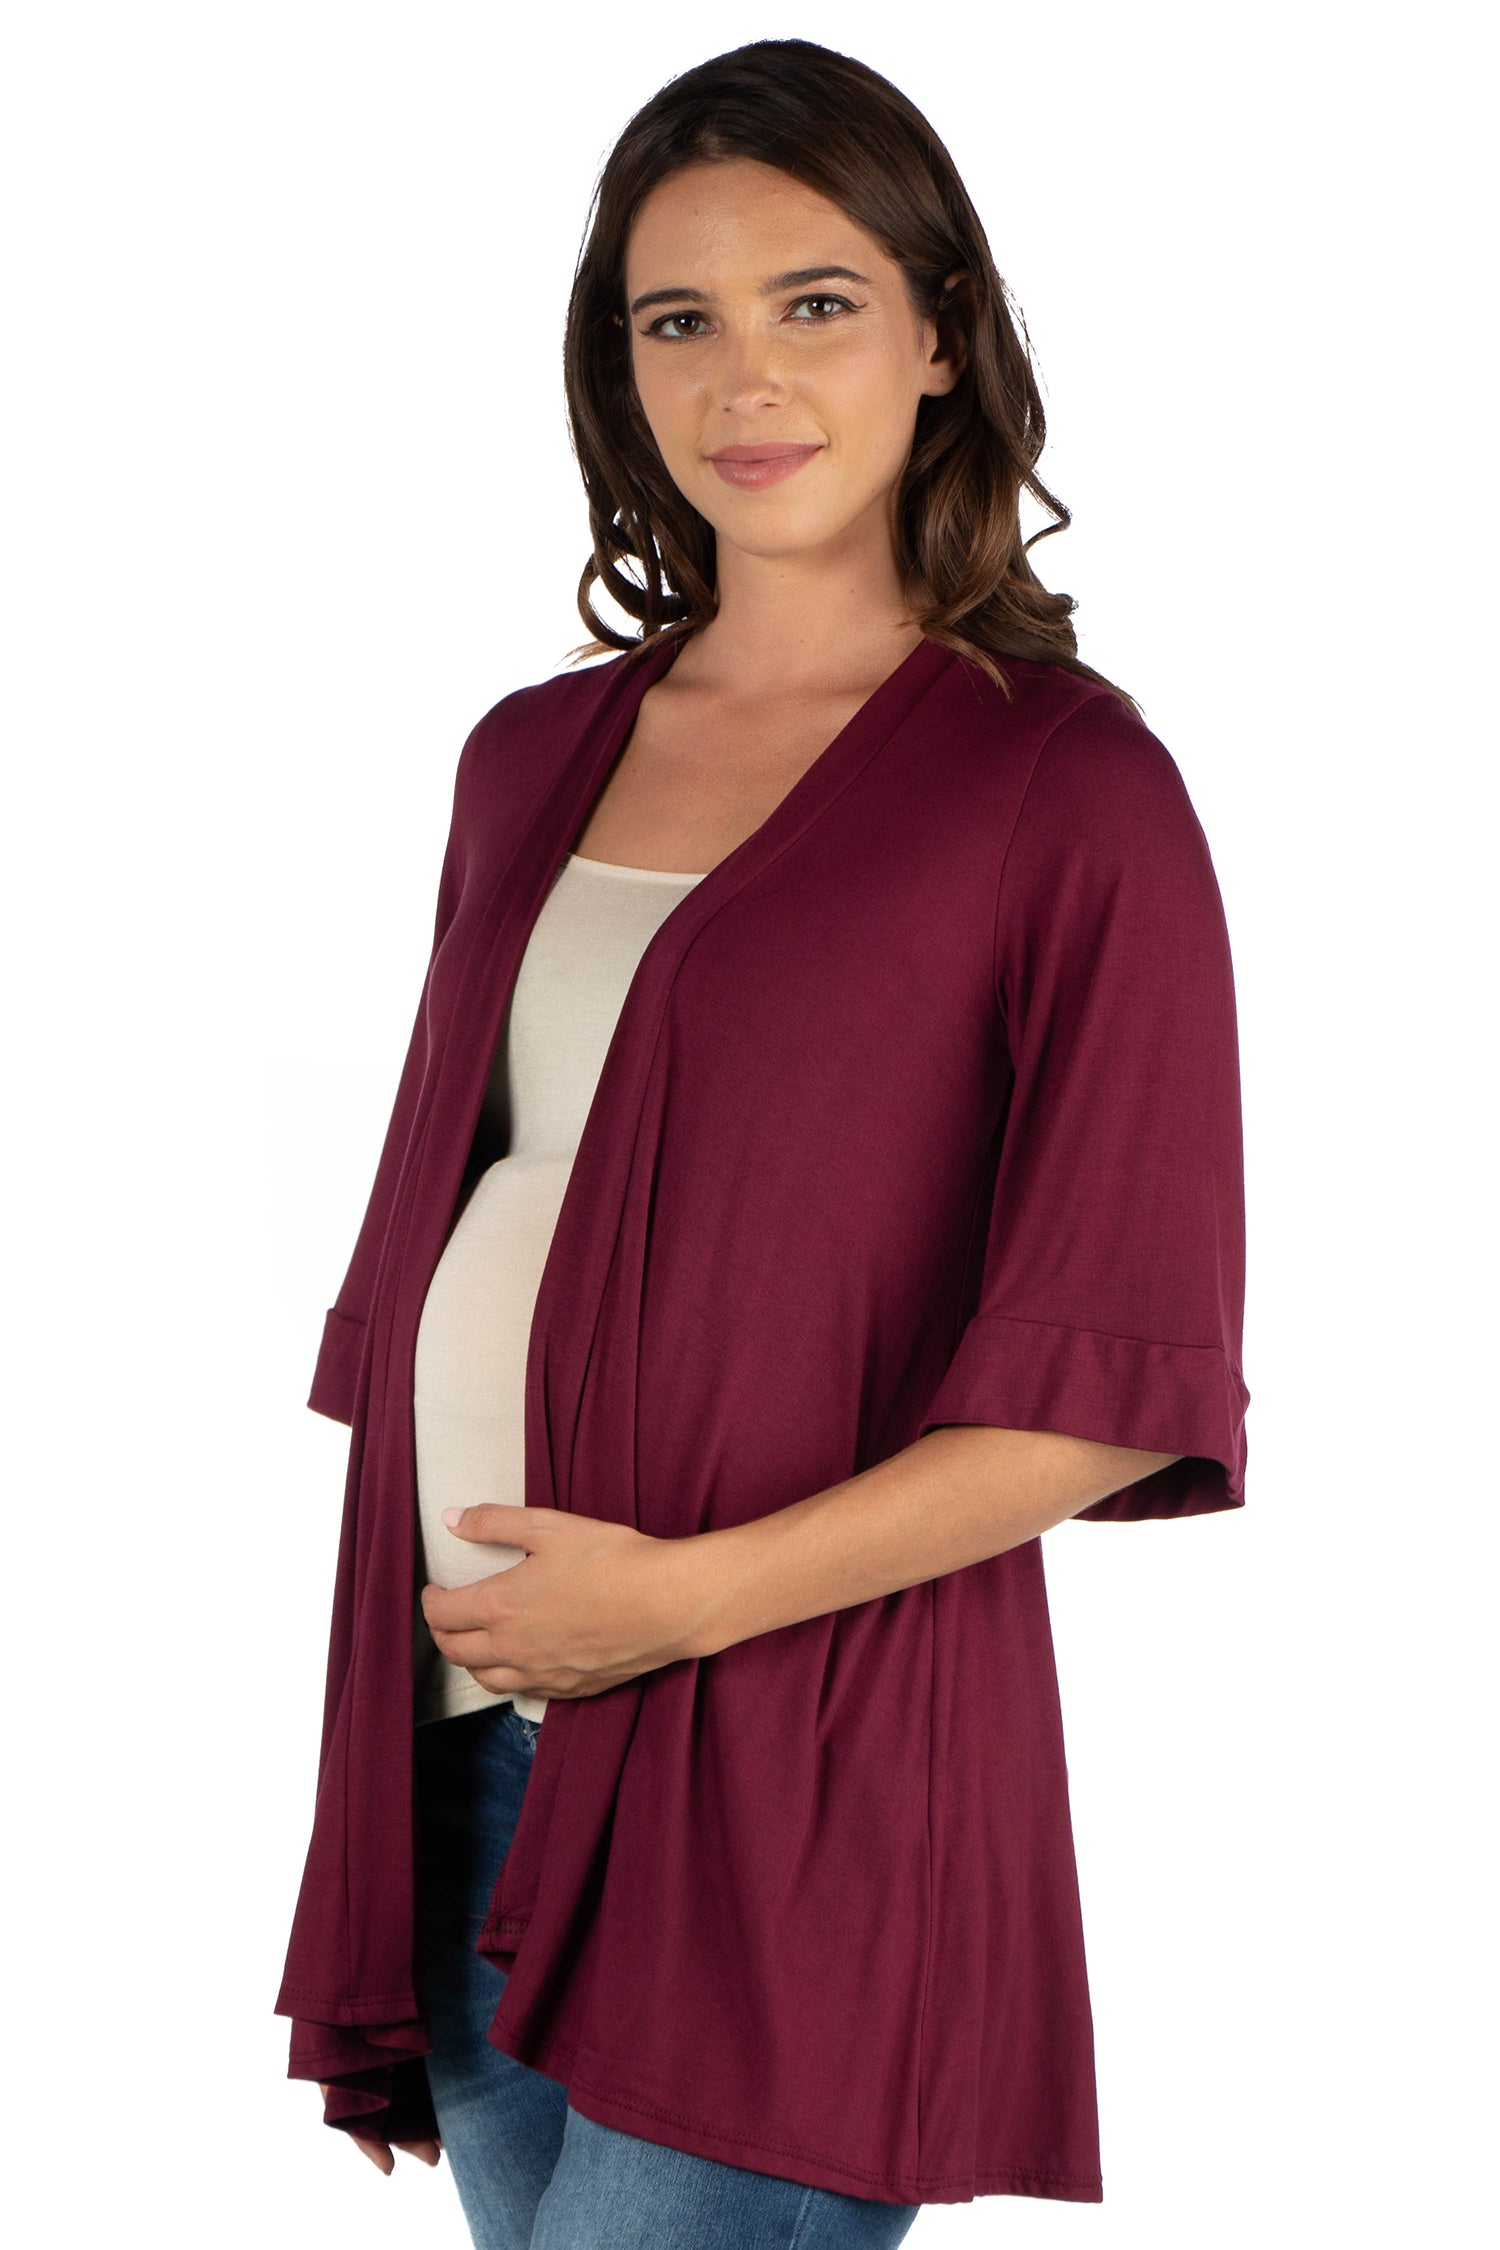 24seven Comfort Apparel Elbow Length Sleeve Open Front Maternity Cardigan-SHRUGS-24Seven Comfort Apparel-WINE-1X-24/7 Comfort Apparel